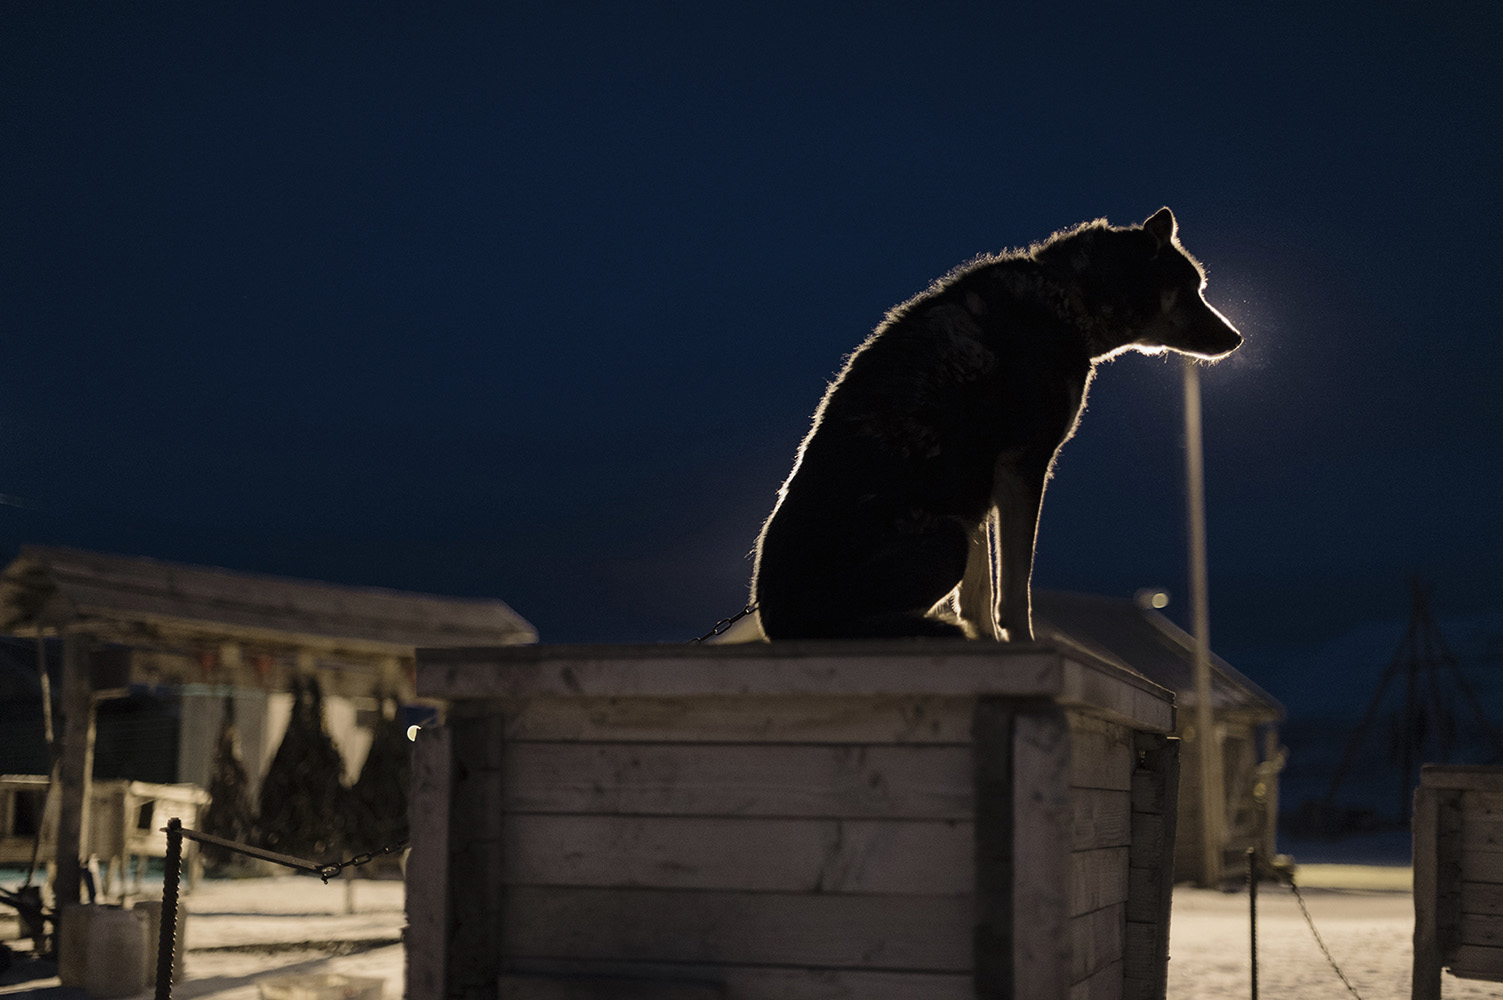 Alaskan Husky, sled dogs, in -18 degree Celsius (°C), during the dark period, SpitsbergenLongyearbyen is the most northern town in the world with its 78°13'N Latitude.